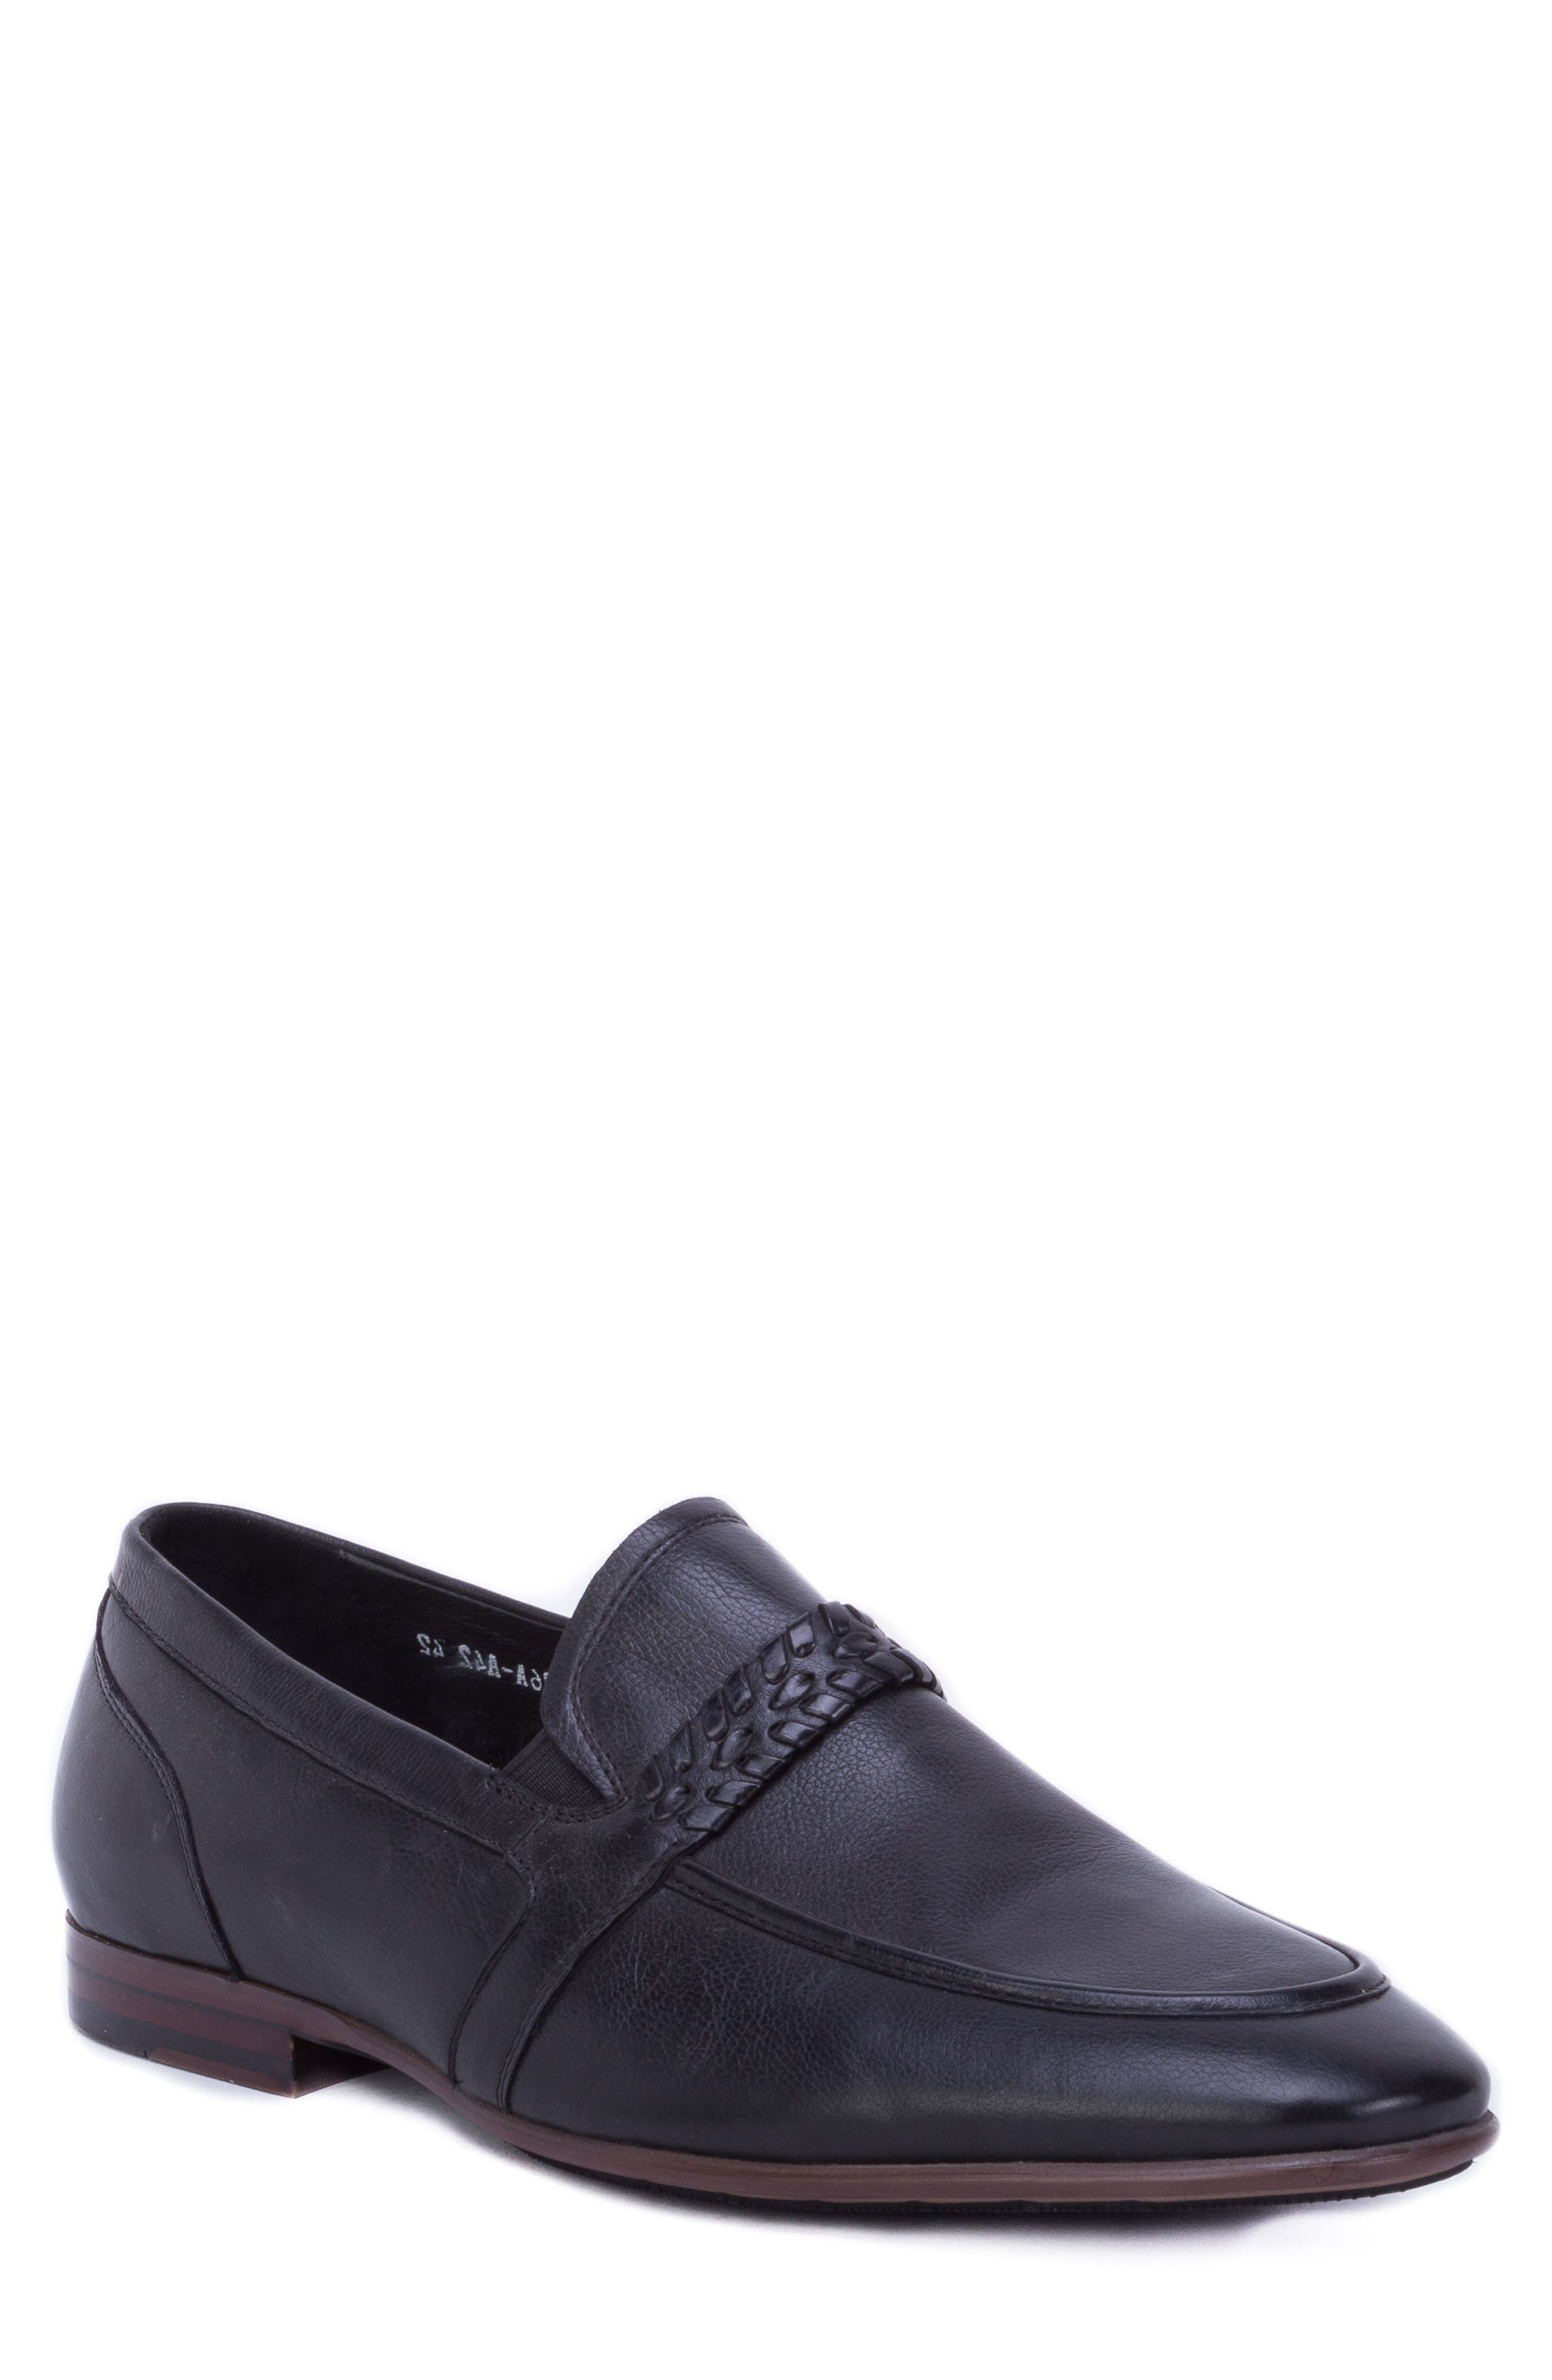 Robinson Whipstitch Apron Toe Loafer,                         Main,                         color, BLACK LEATHER